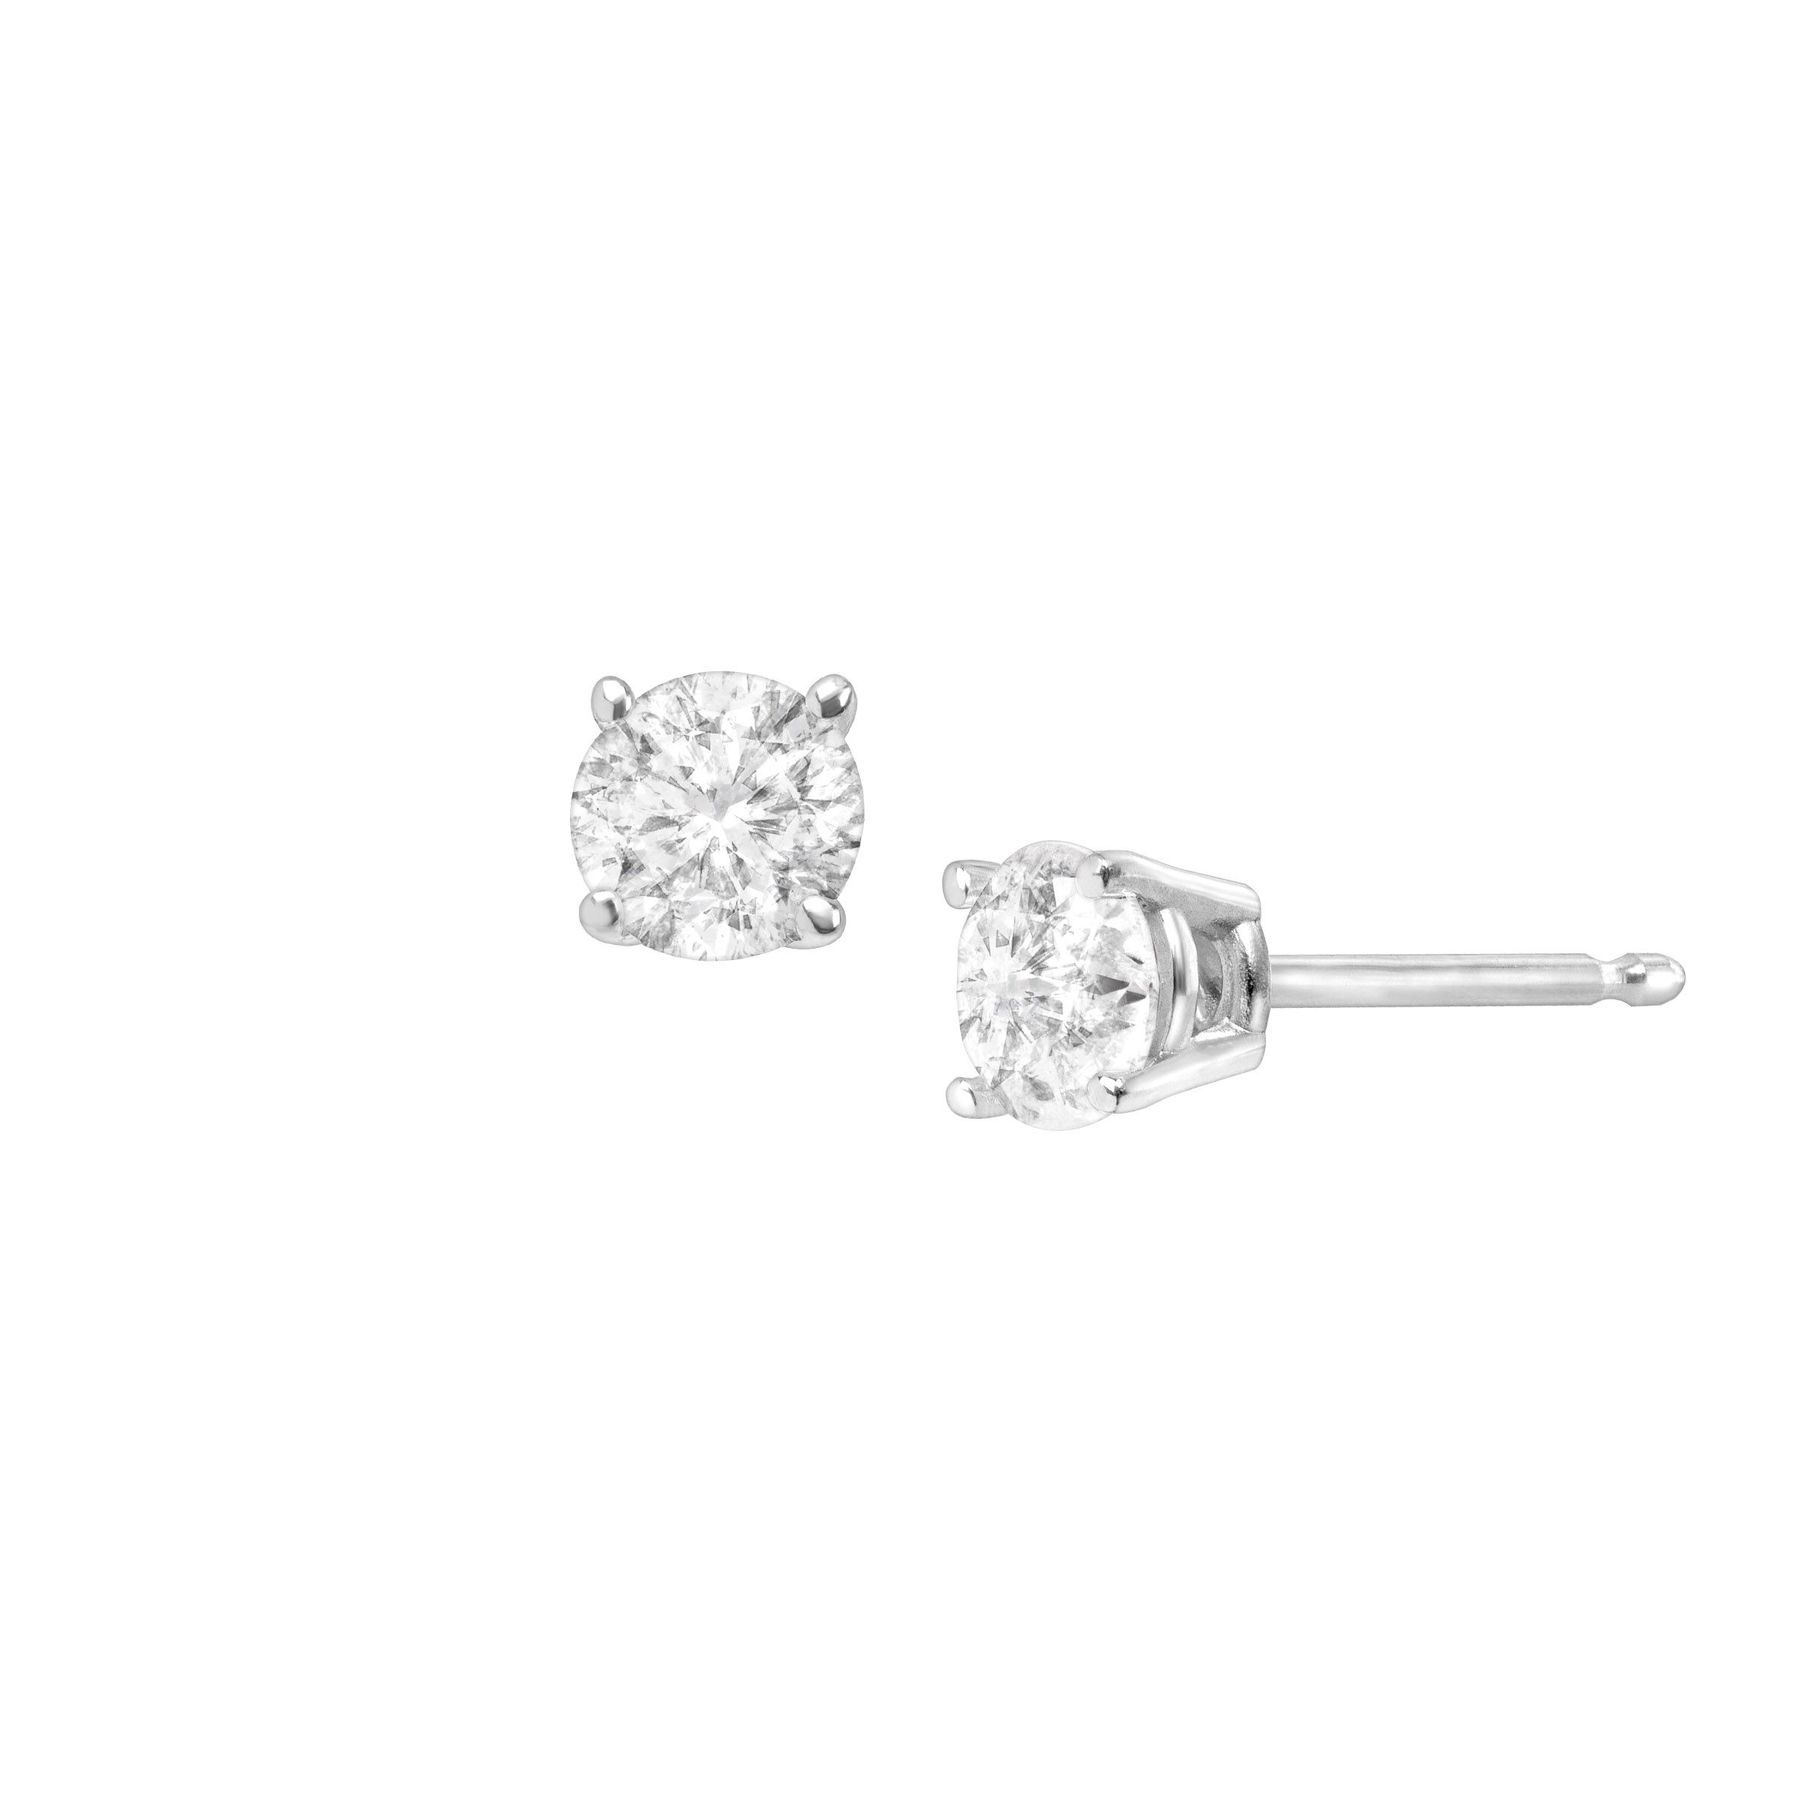 1 2 Ct Round Cut Diamond Stud Earrings